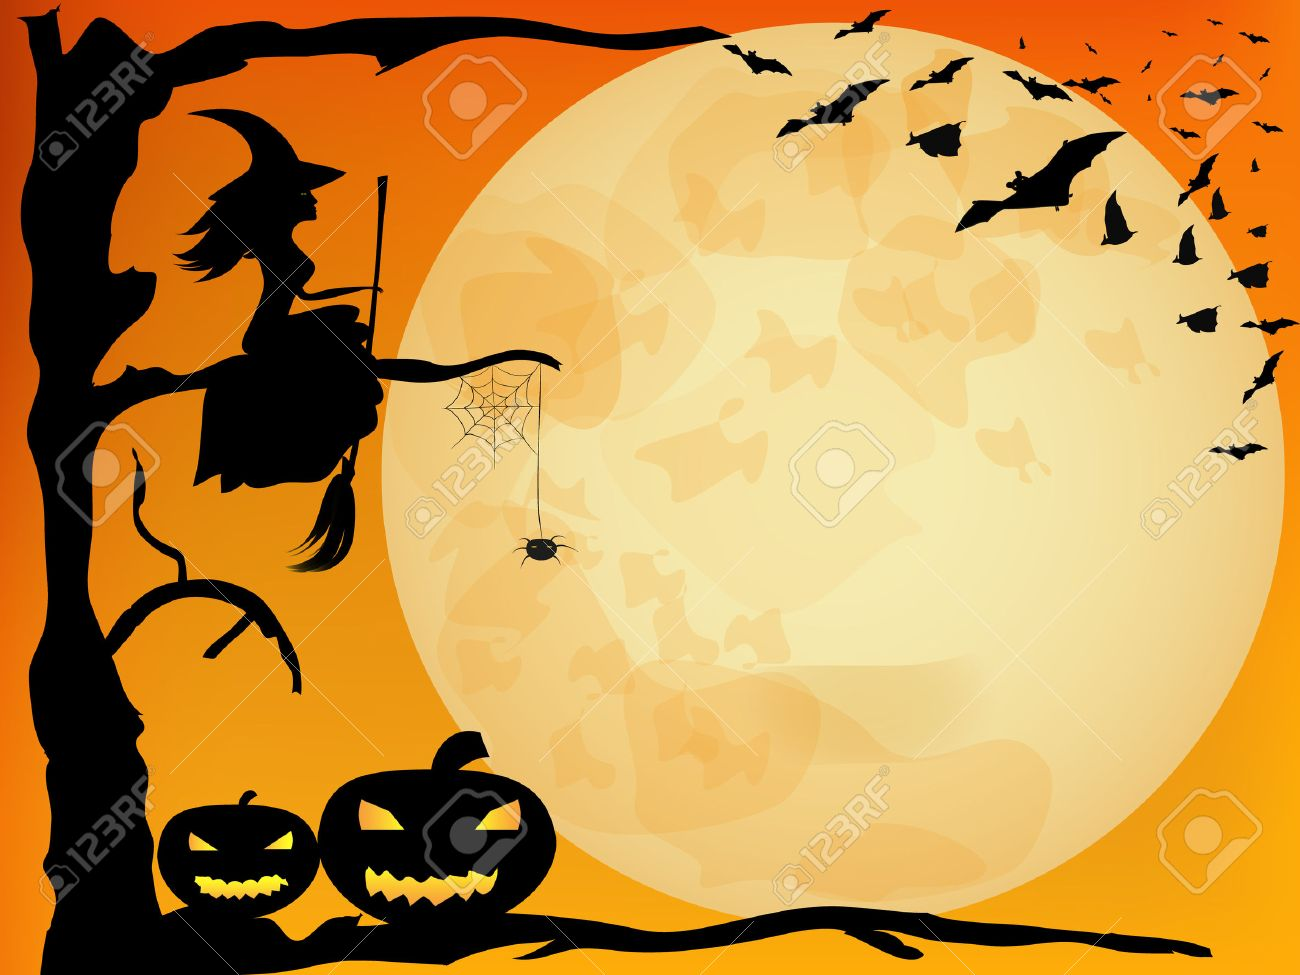 halloween design witch pumpkins spider and bats on orange moon background stock vector - Halloween Design